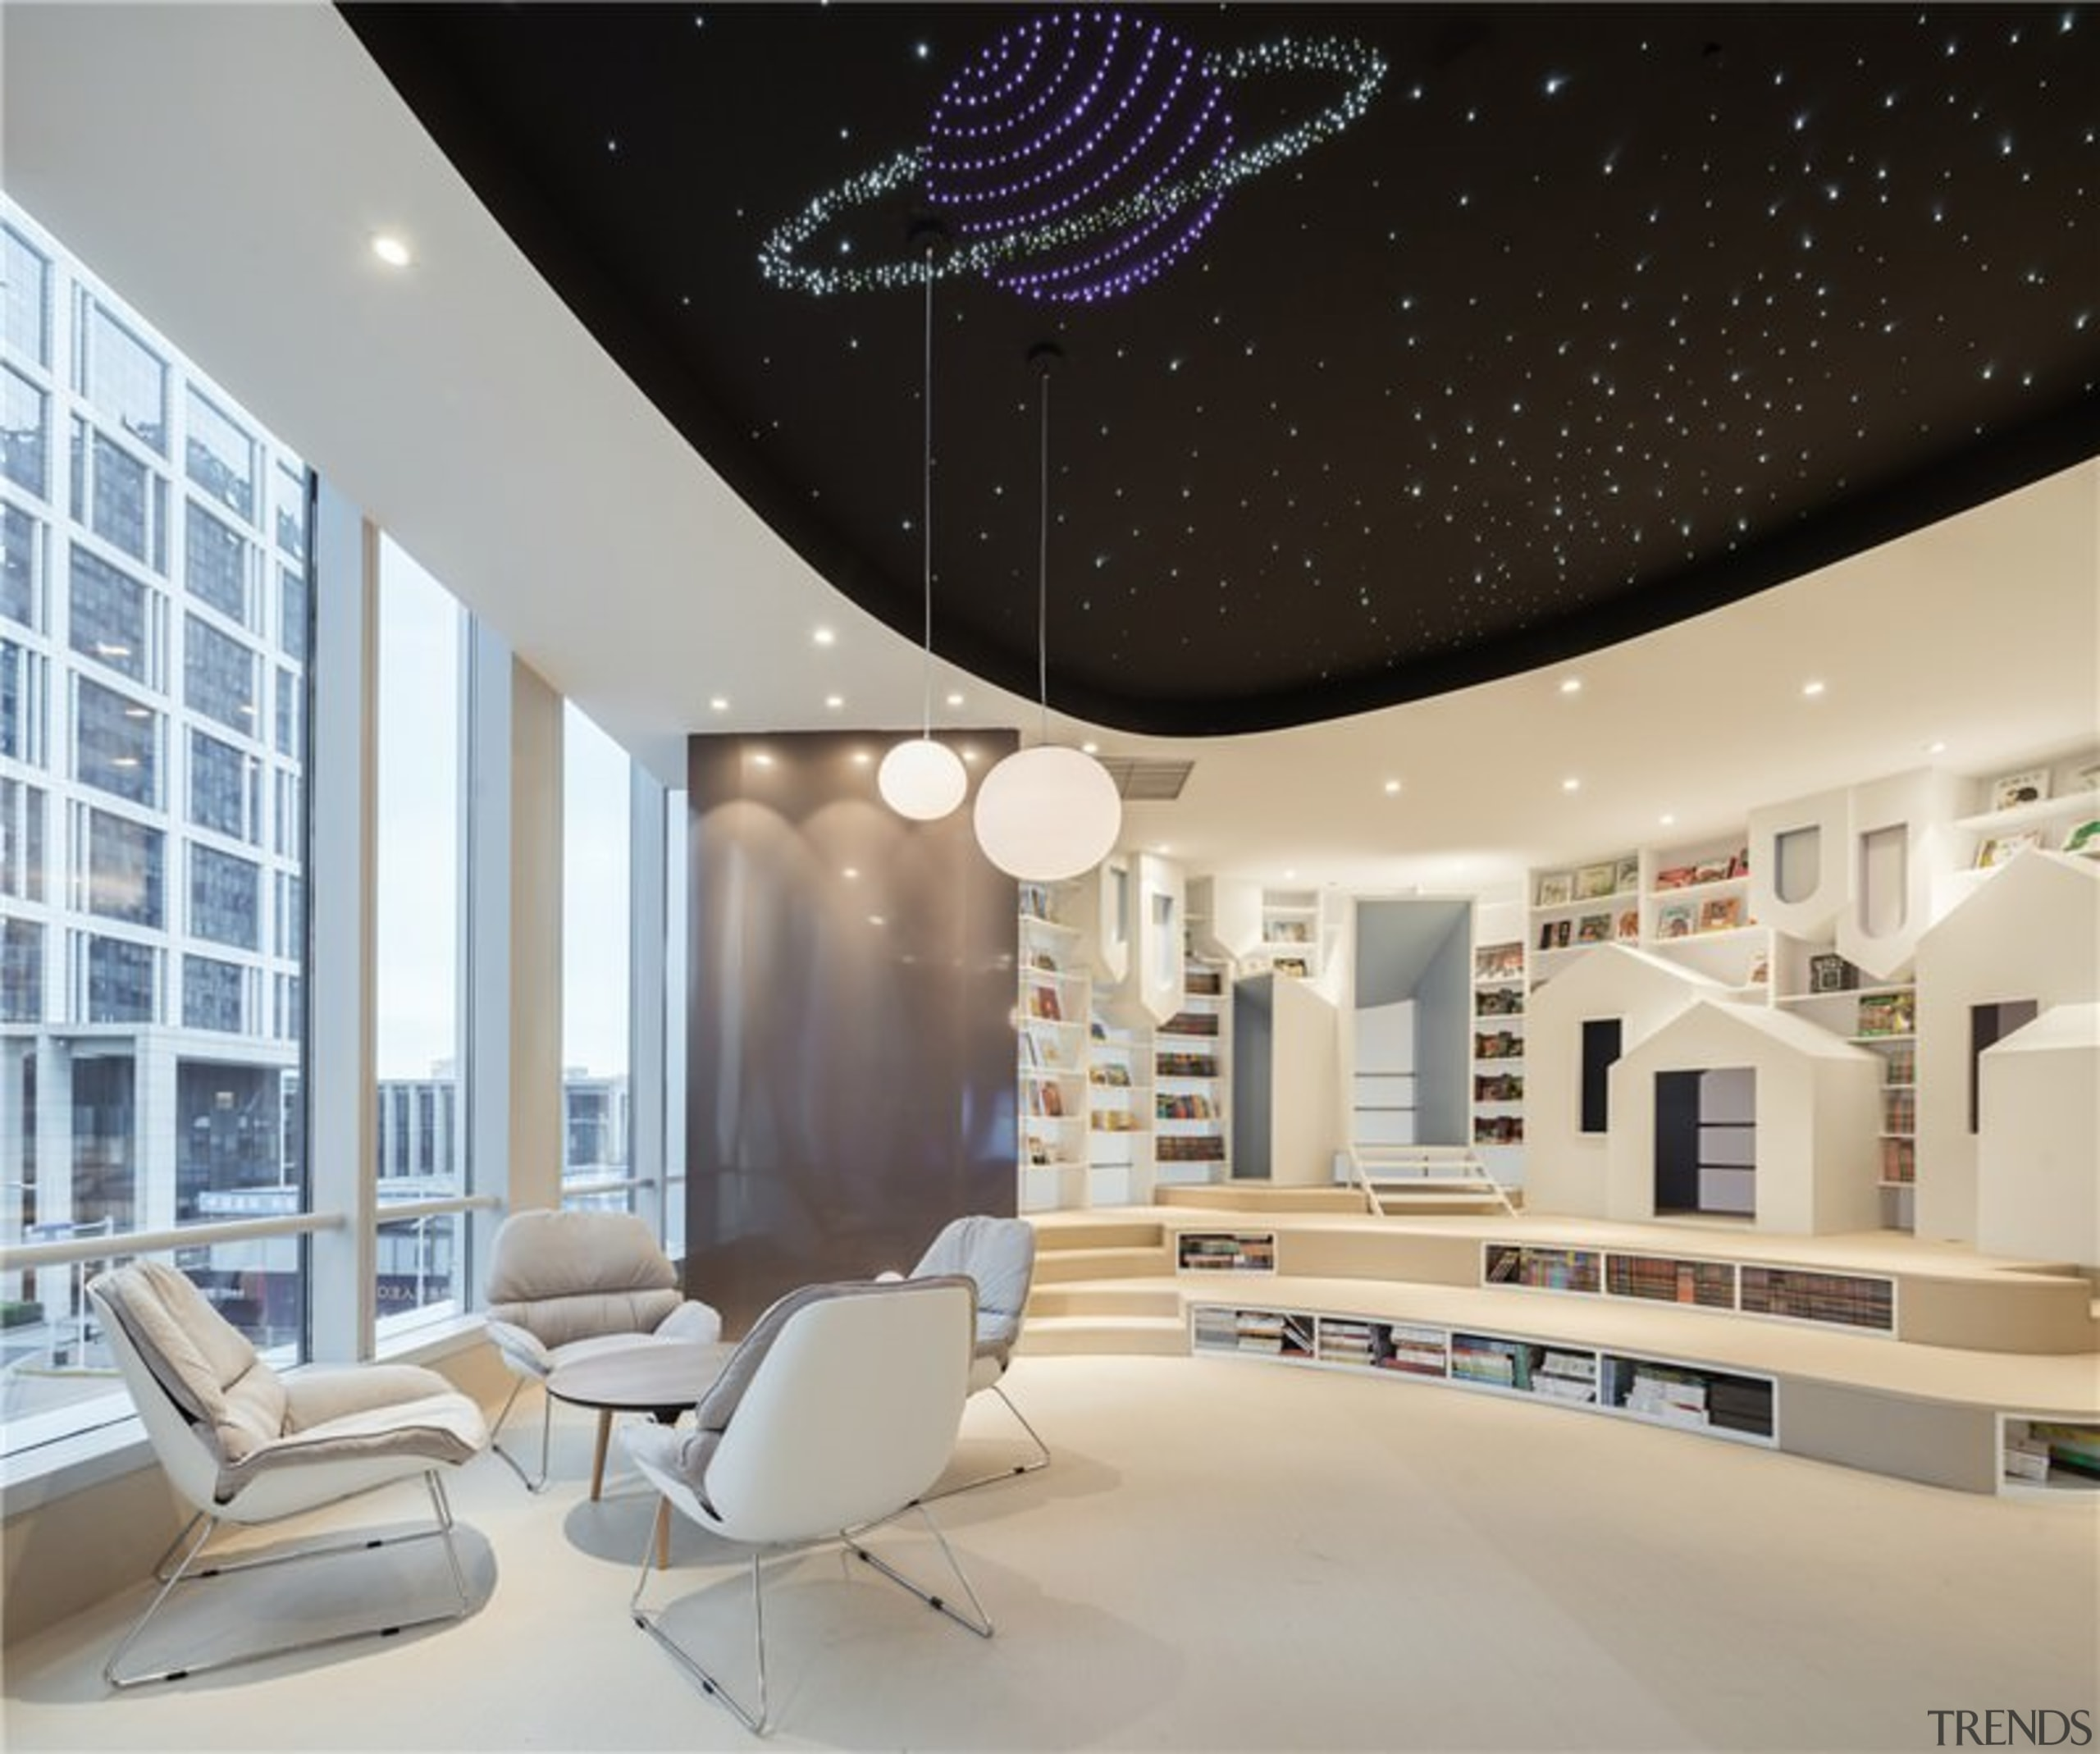 A new take on the bookstore - A ceiling, daylighting, interior design, living room, product design, gray